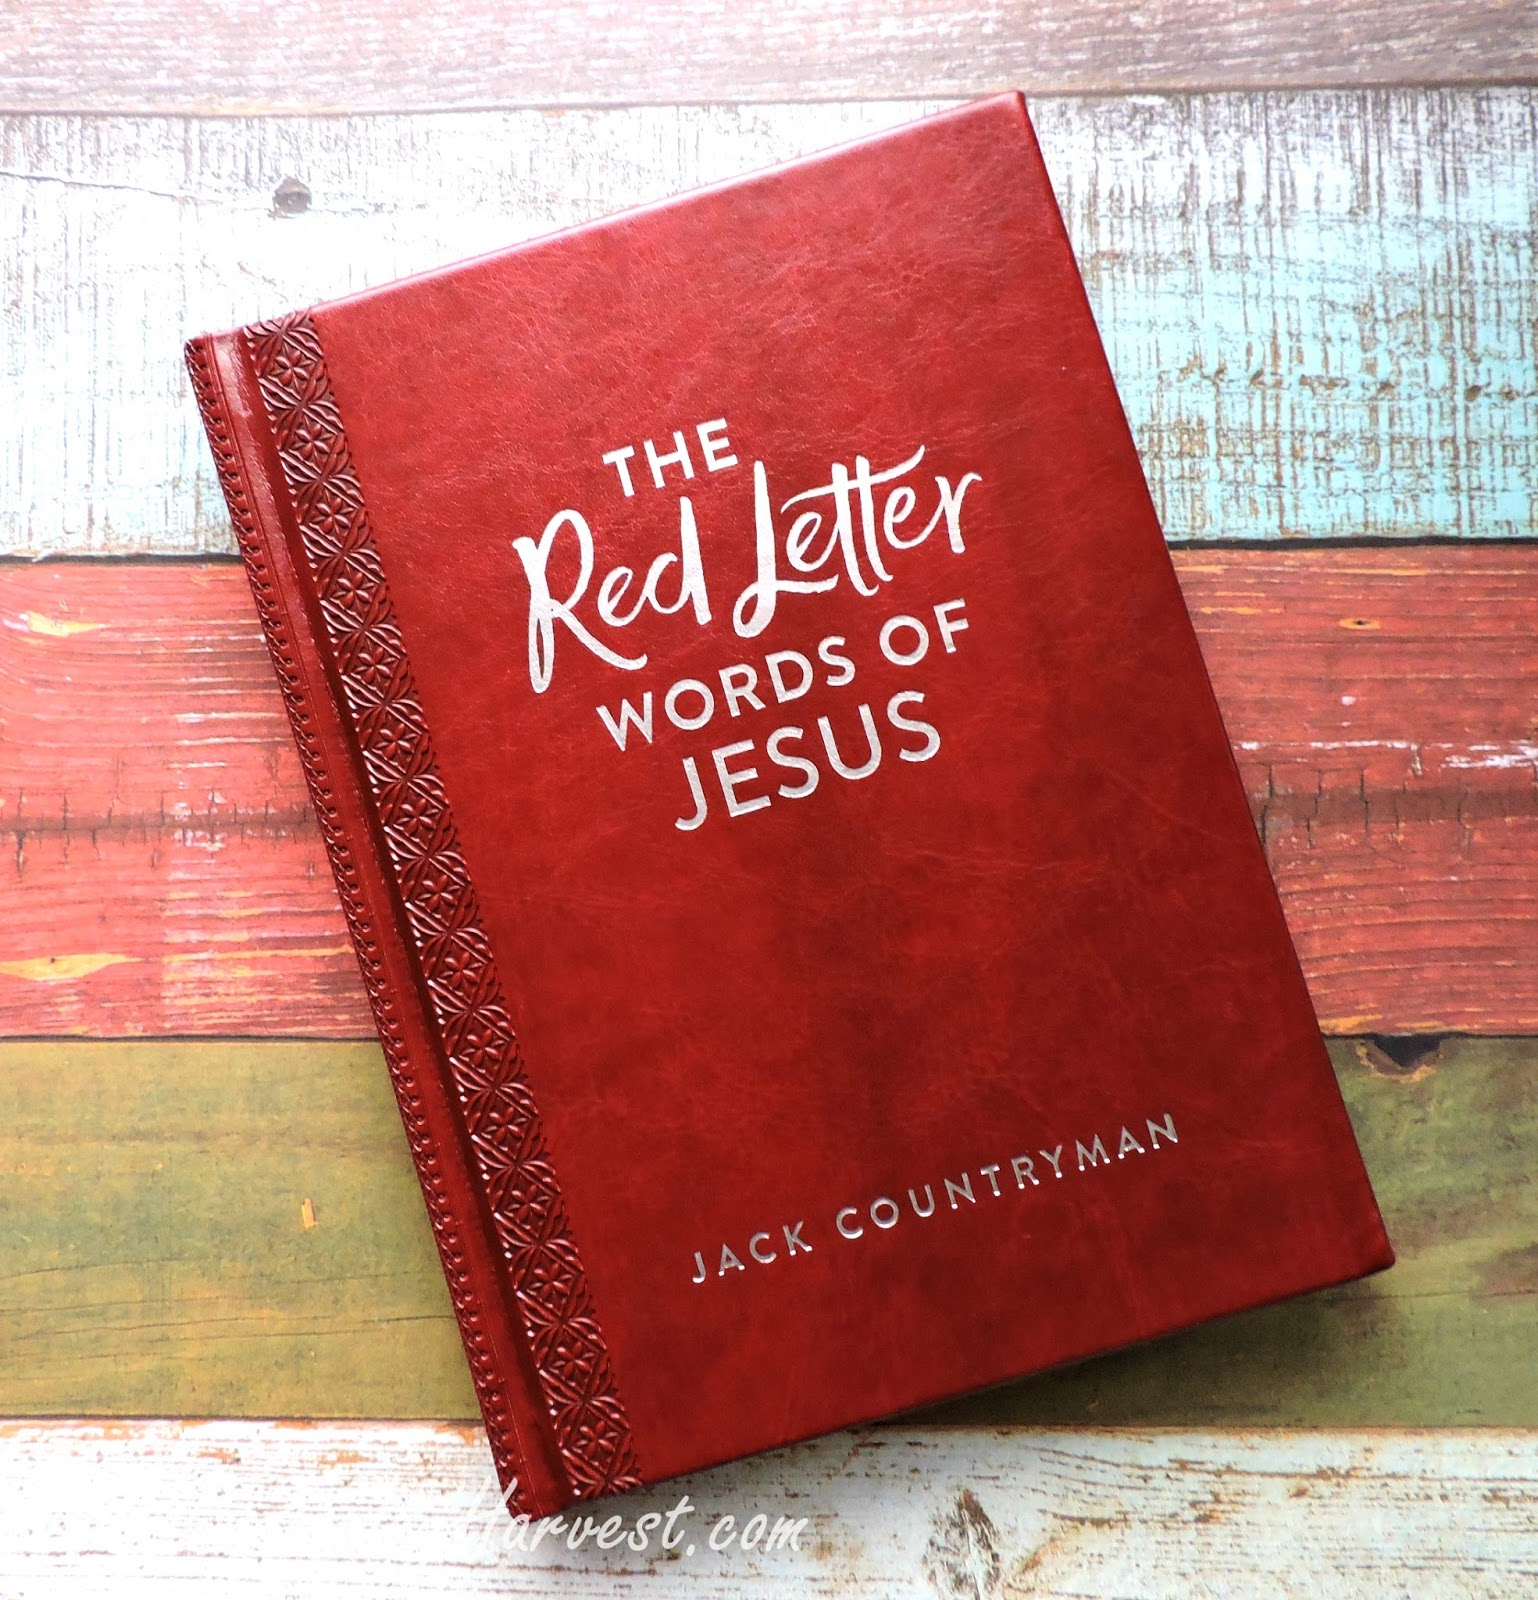 discovering christ through his teachings the red letter With red letter words of jesus